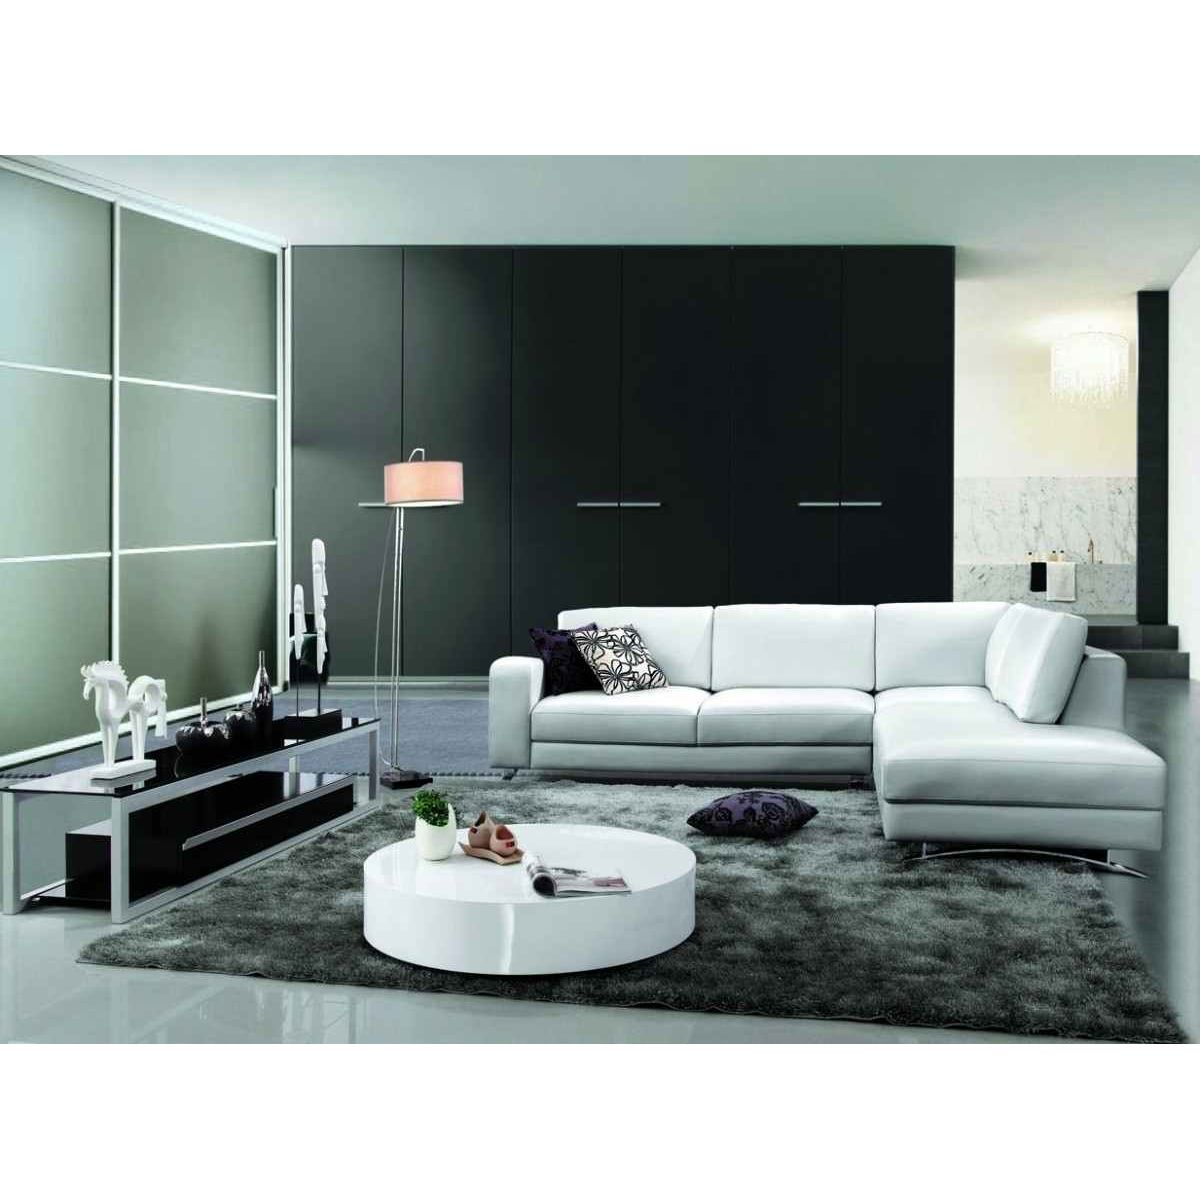 deco in paris canape d angle contemporain cuir blanc living can angledroit living pu blanc. Black Bedroom Furniture Sets. Home Design Ideas